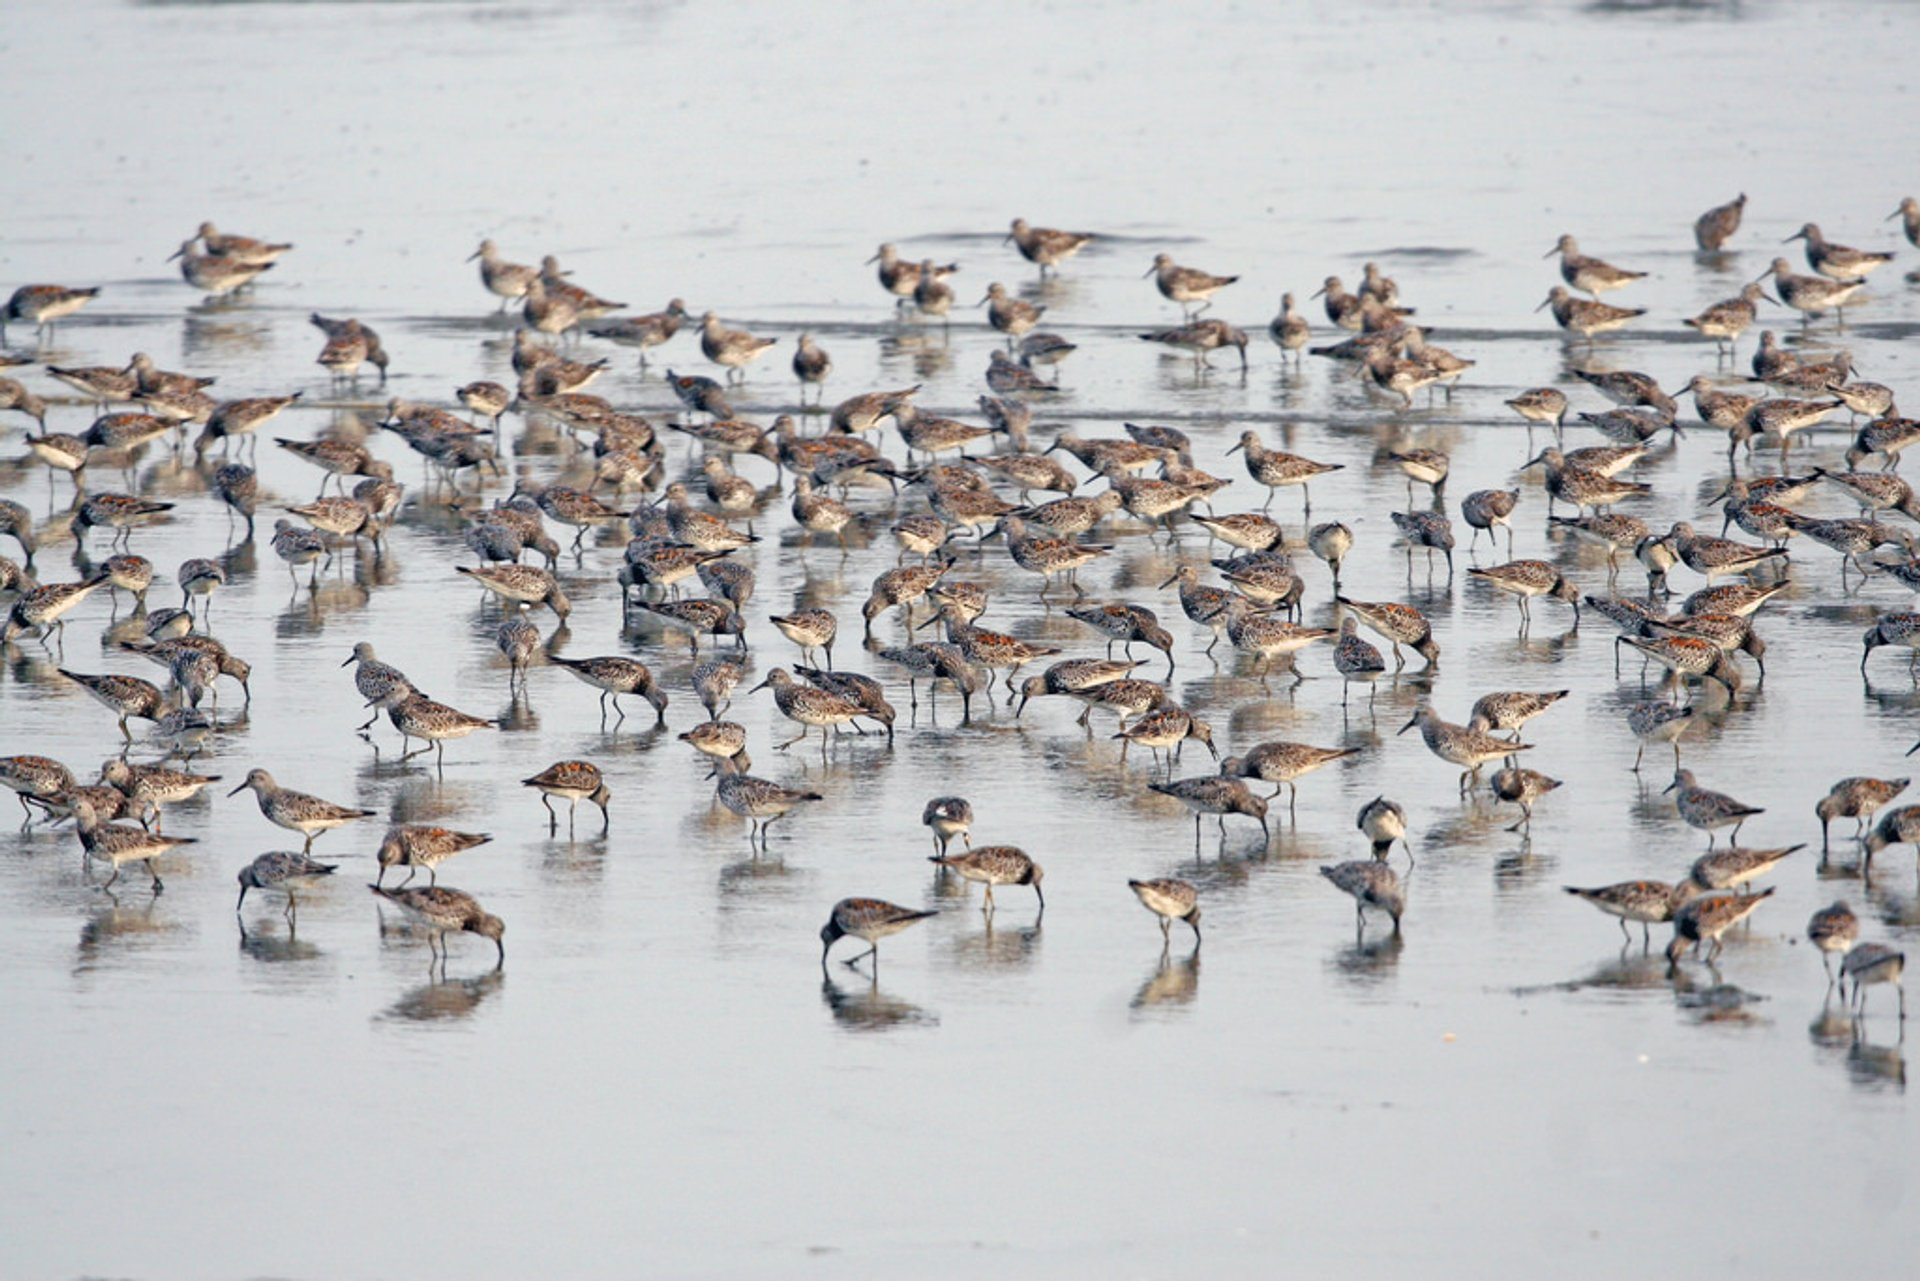 Great Knots (Calidris tenuirostris) feeding on the former Saemangeum flats, South Korea